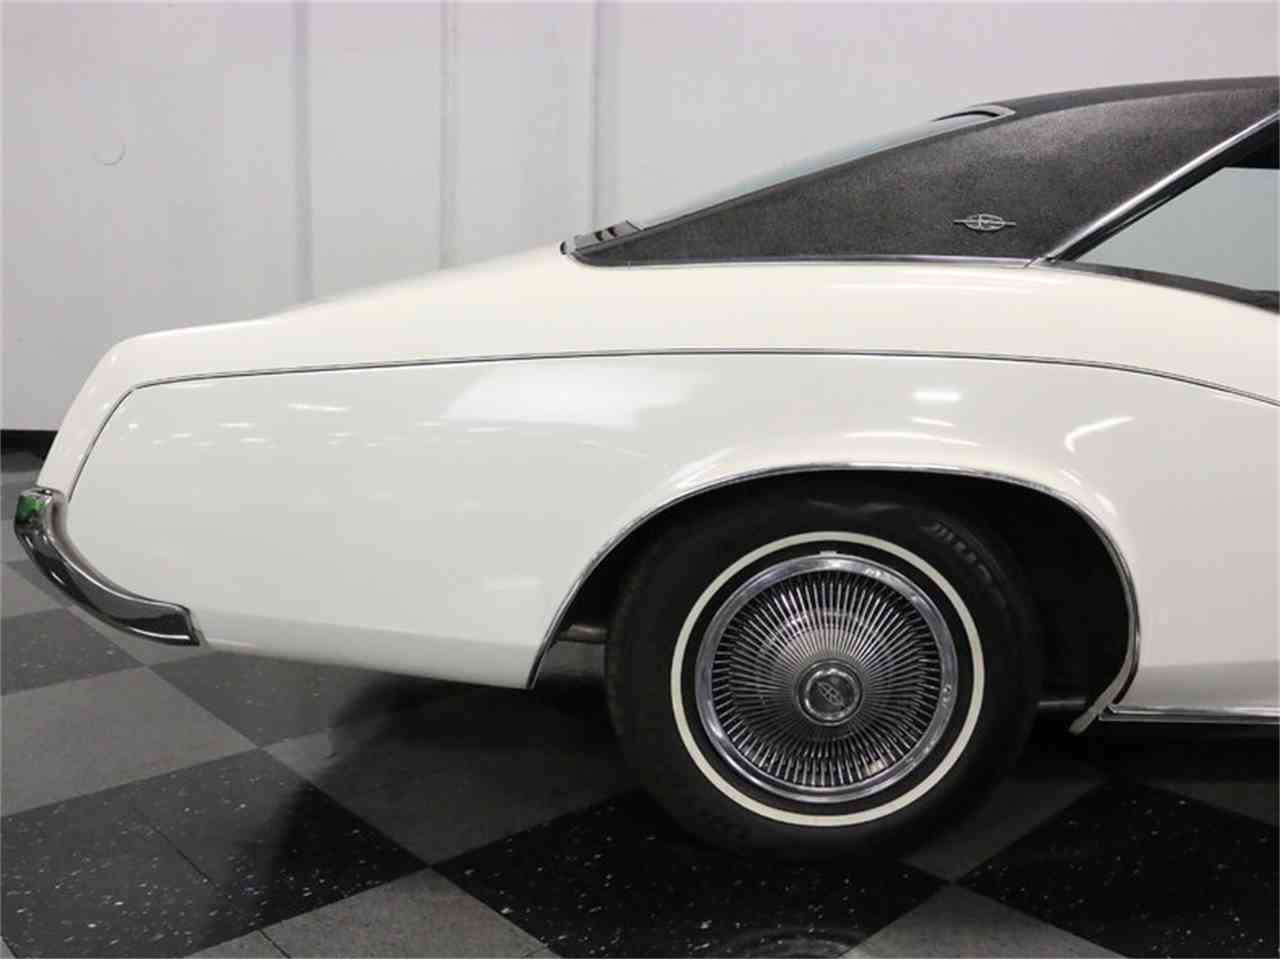 Large Picture of 1967 Buick Riviera located in Ft Worth Texas - $20,995.00 - M5N7